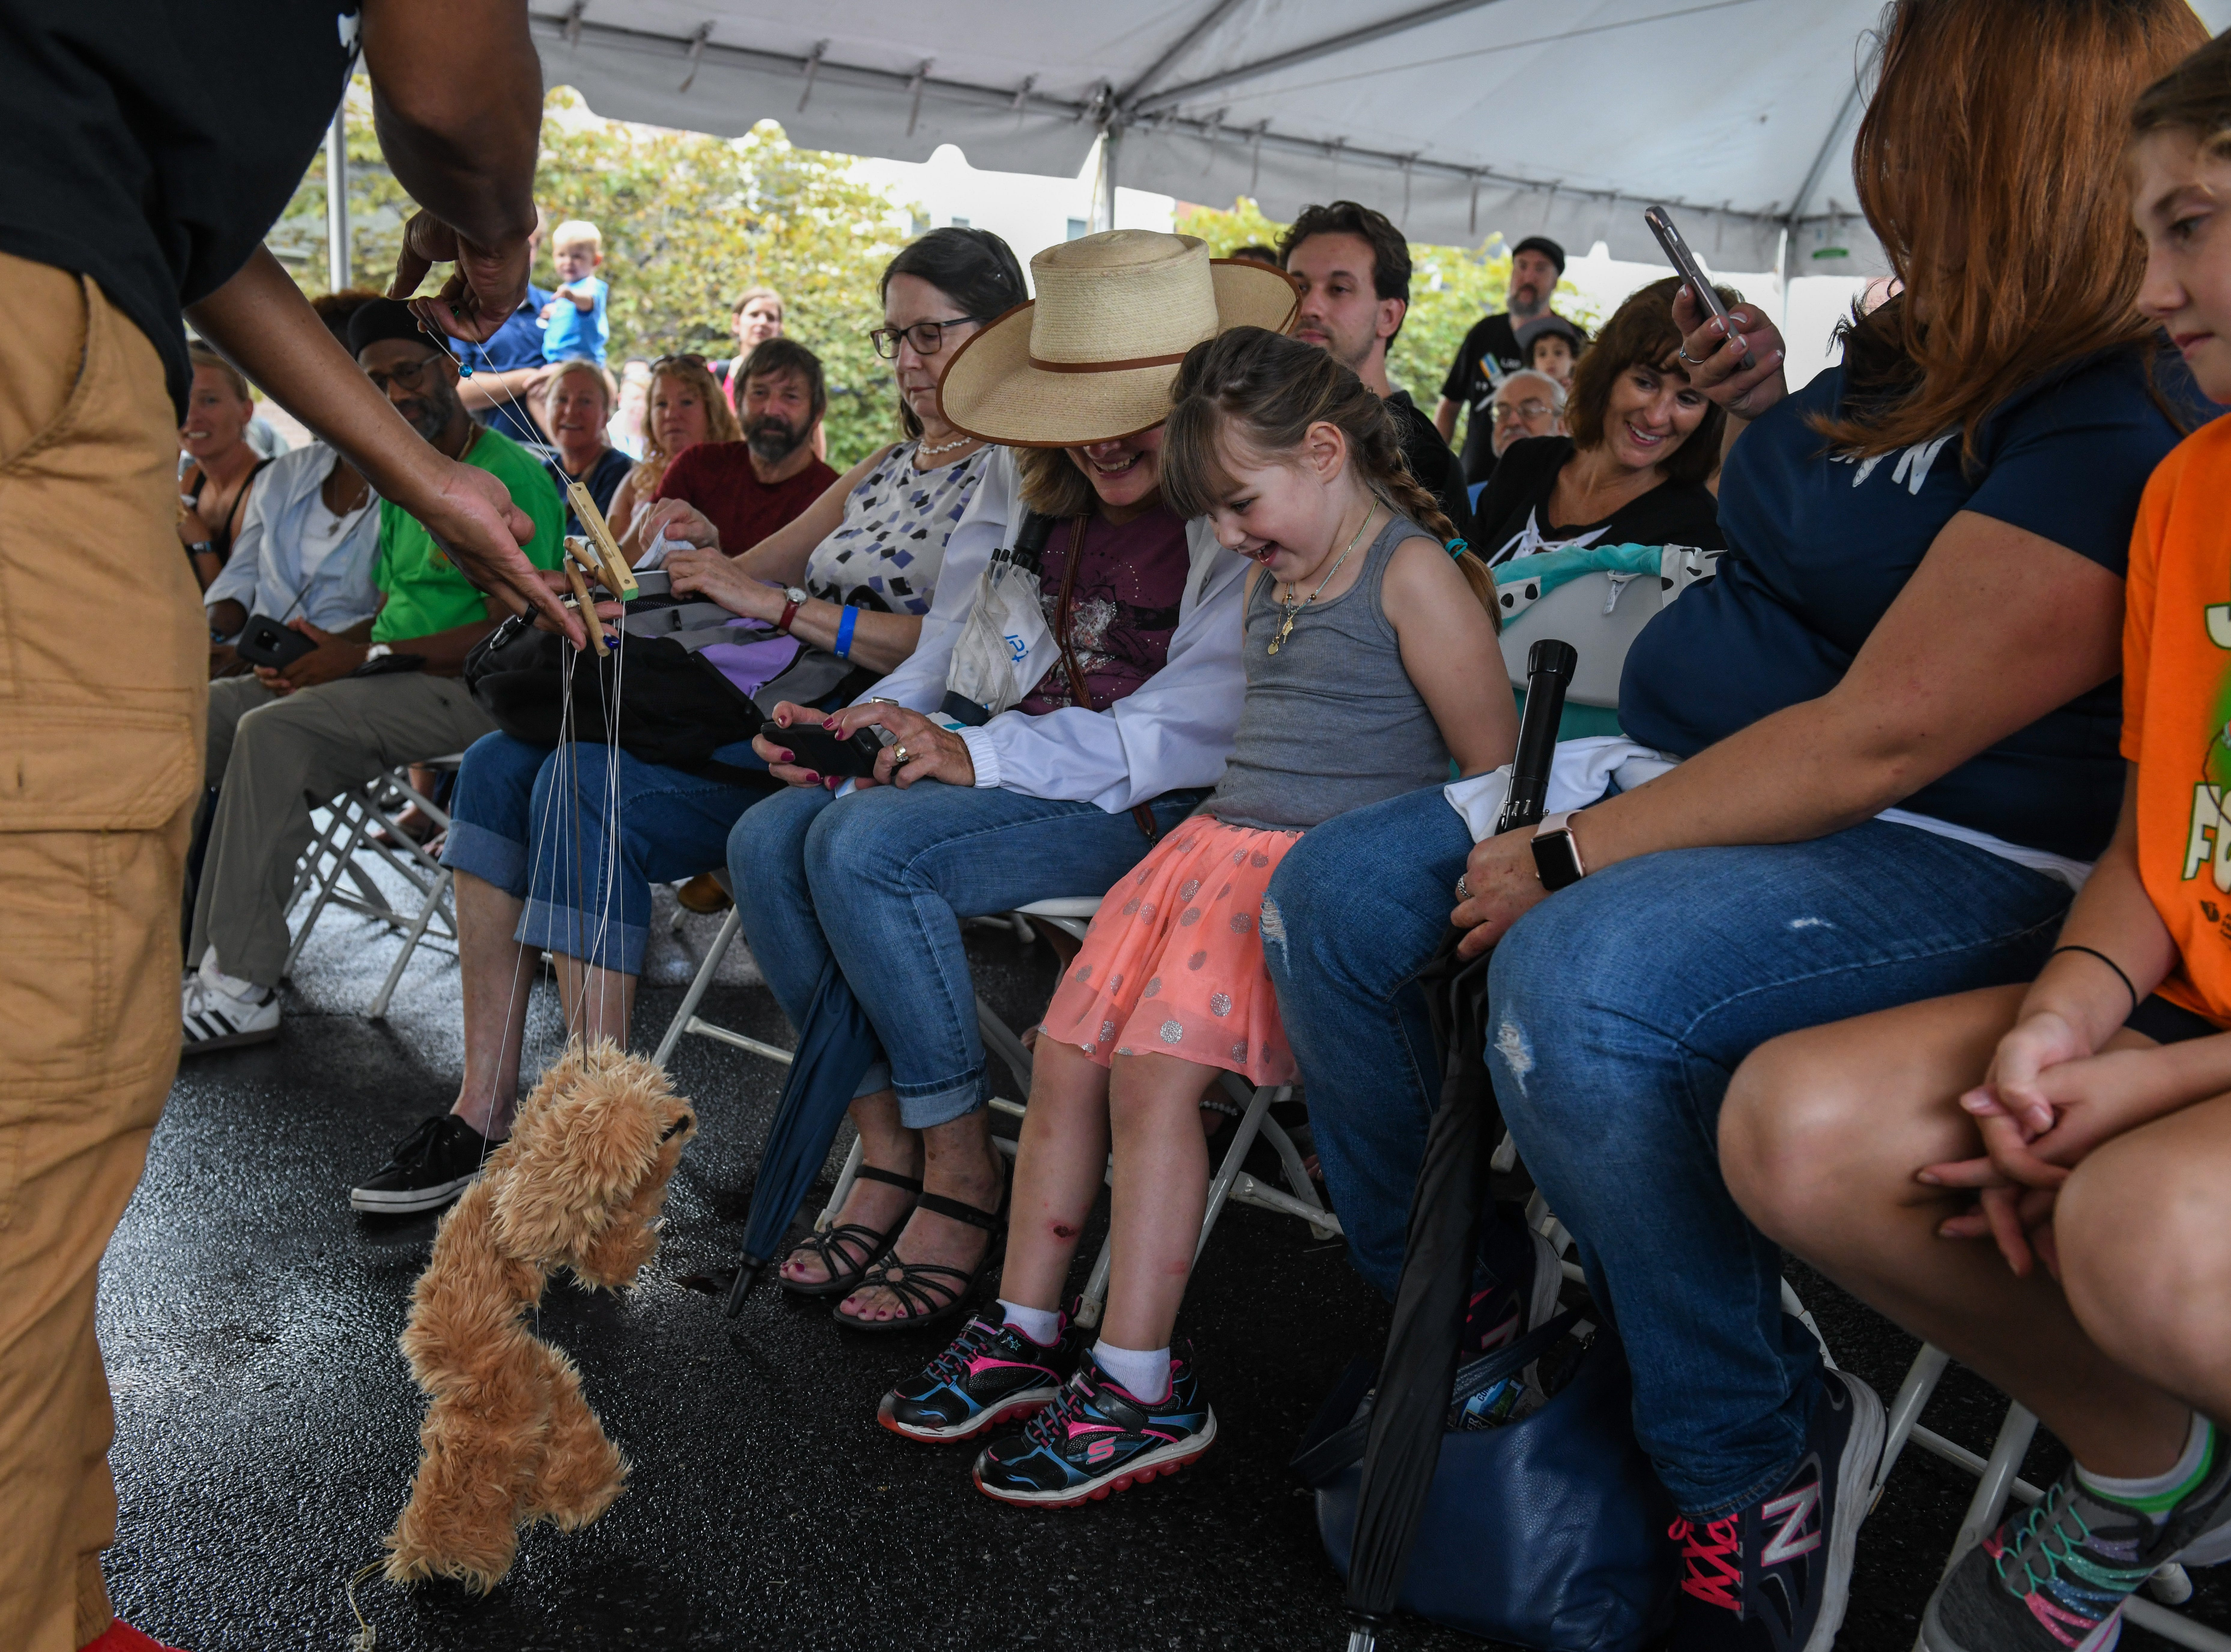 Tarin Papkins of the Jeghetto puppetry group shows a puppet to 5-year-old Lillian Brown at the National Folk Festival in Salisbury on Saturday, Sept. 8.